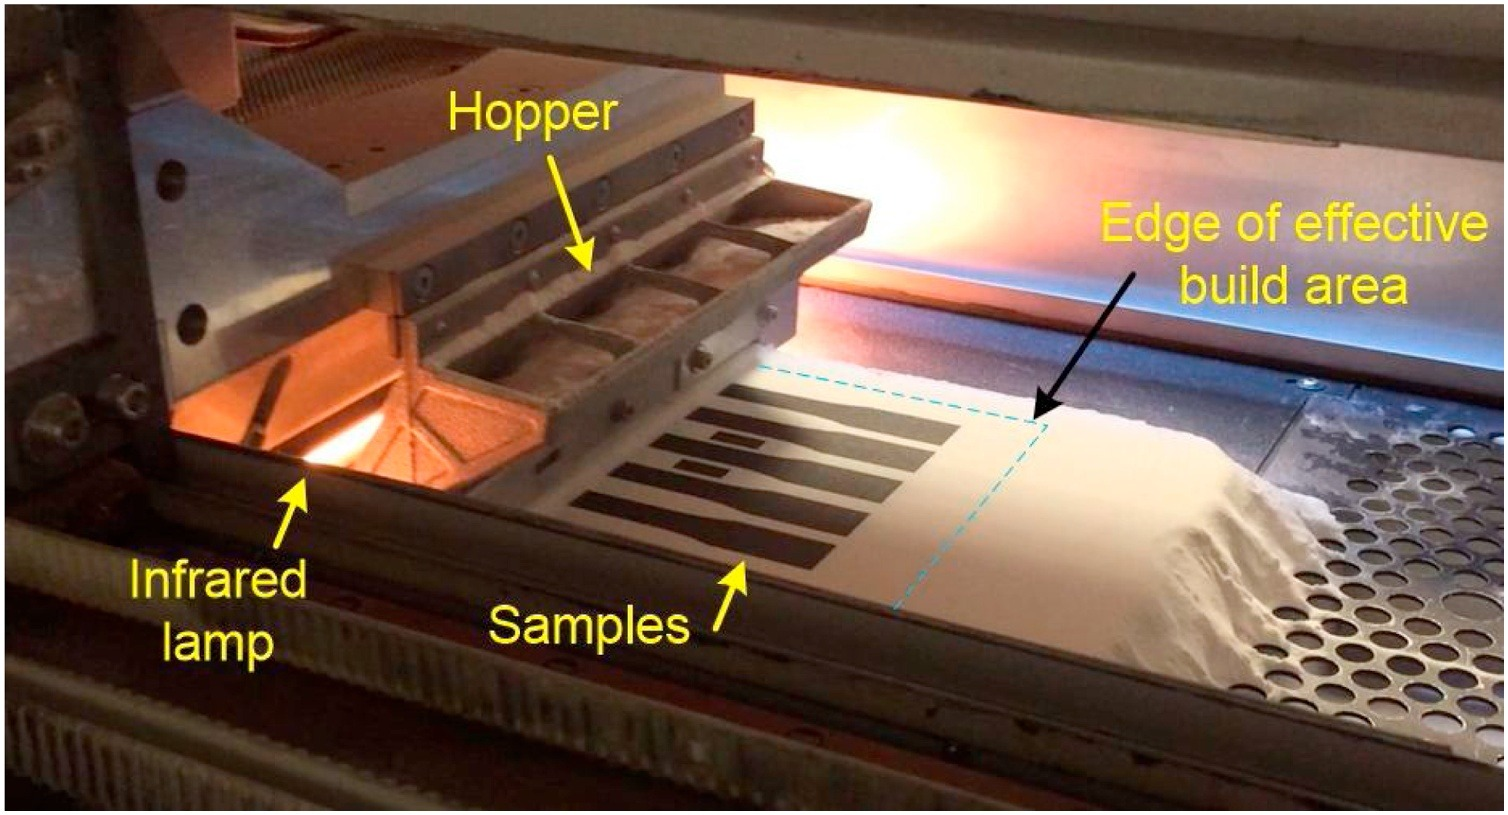 The layout of the building process on the HSS system. - This image shows the layout of the building process on the HSS system. Arrows point to the infrared lamp, samples, hopper and the edge of the effective build area.